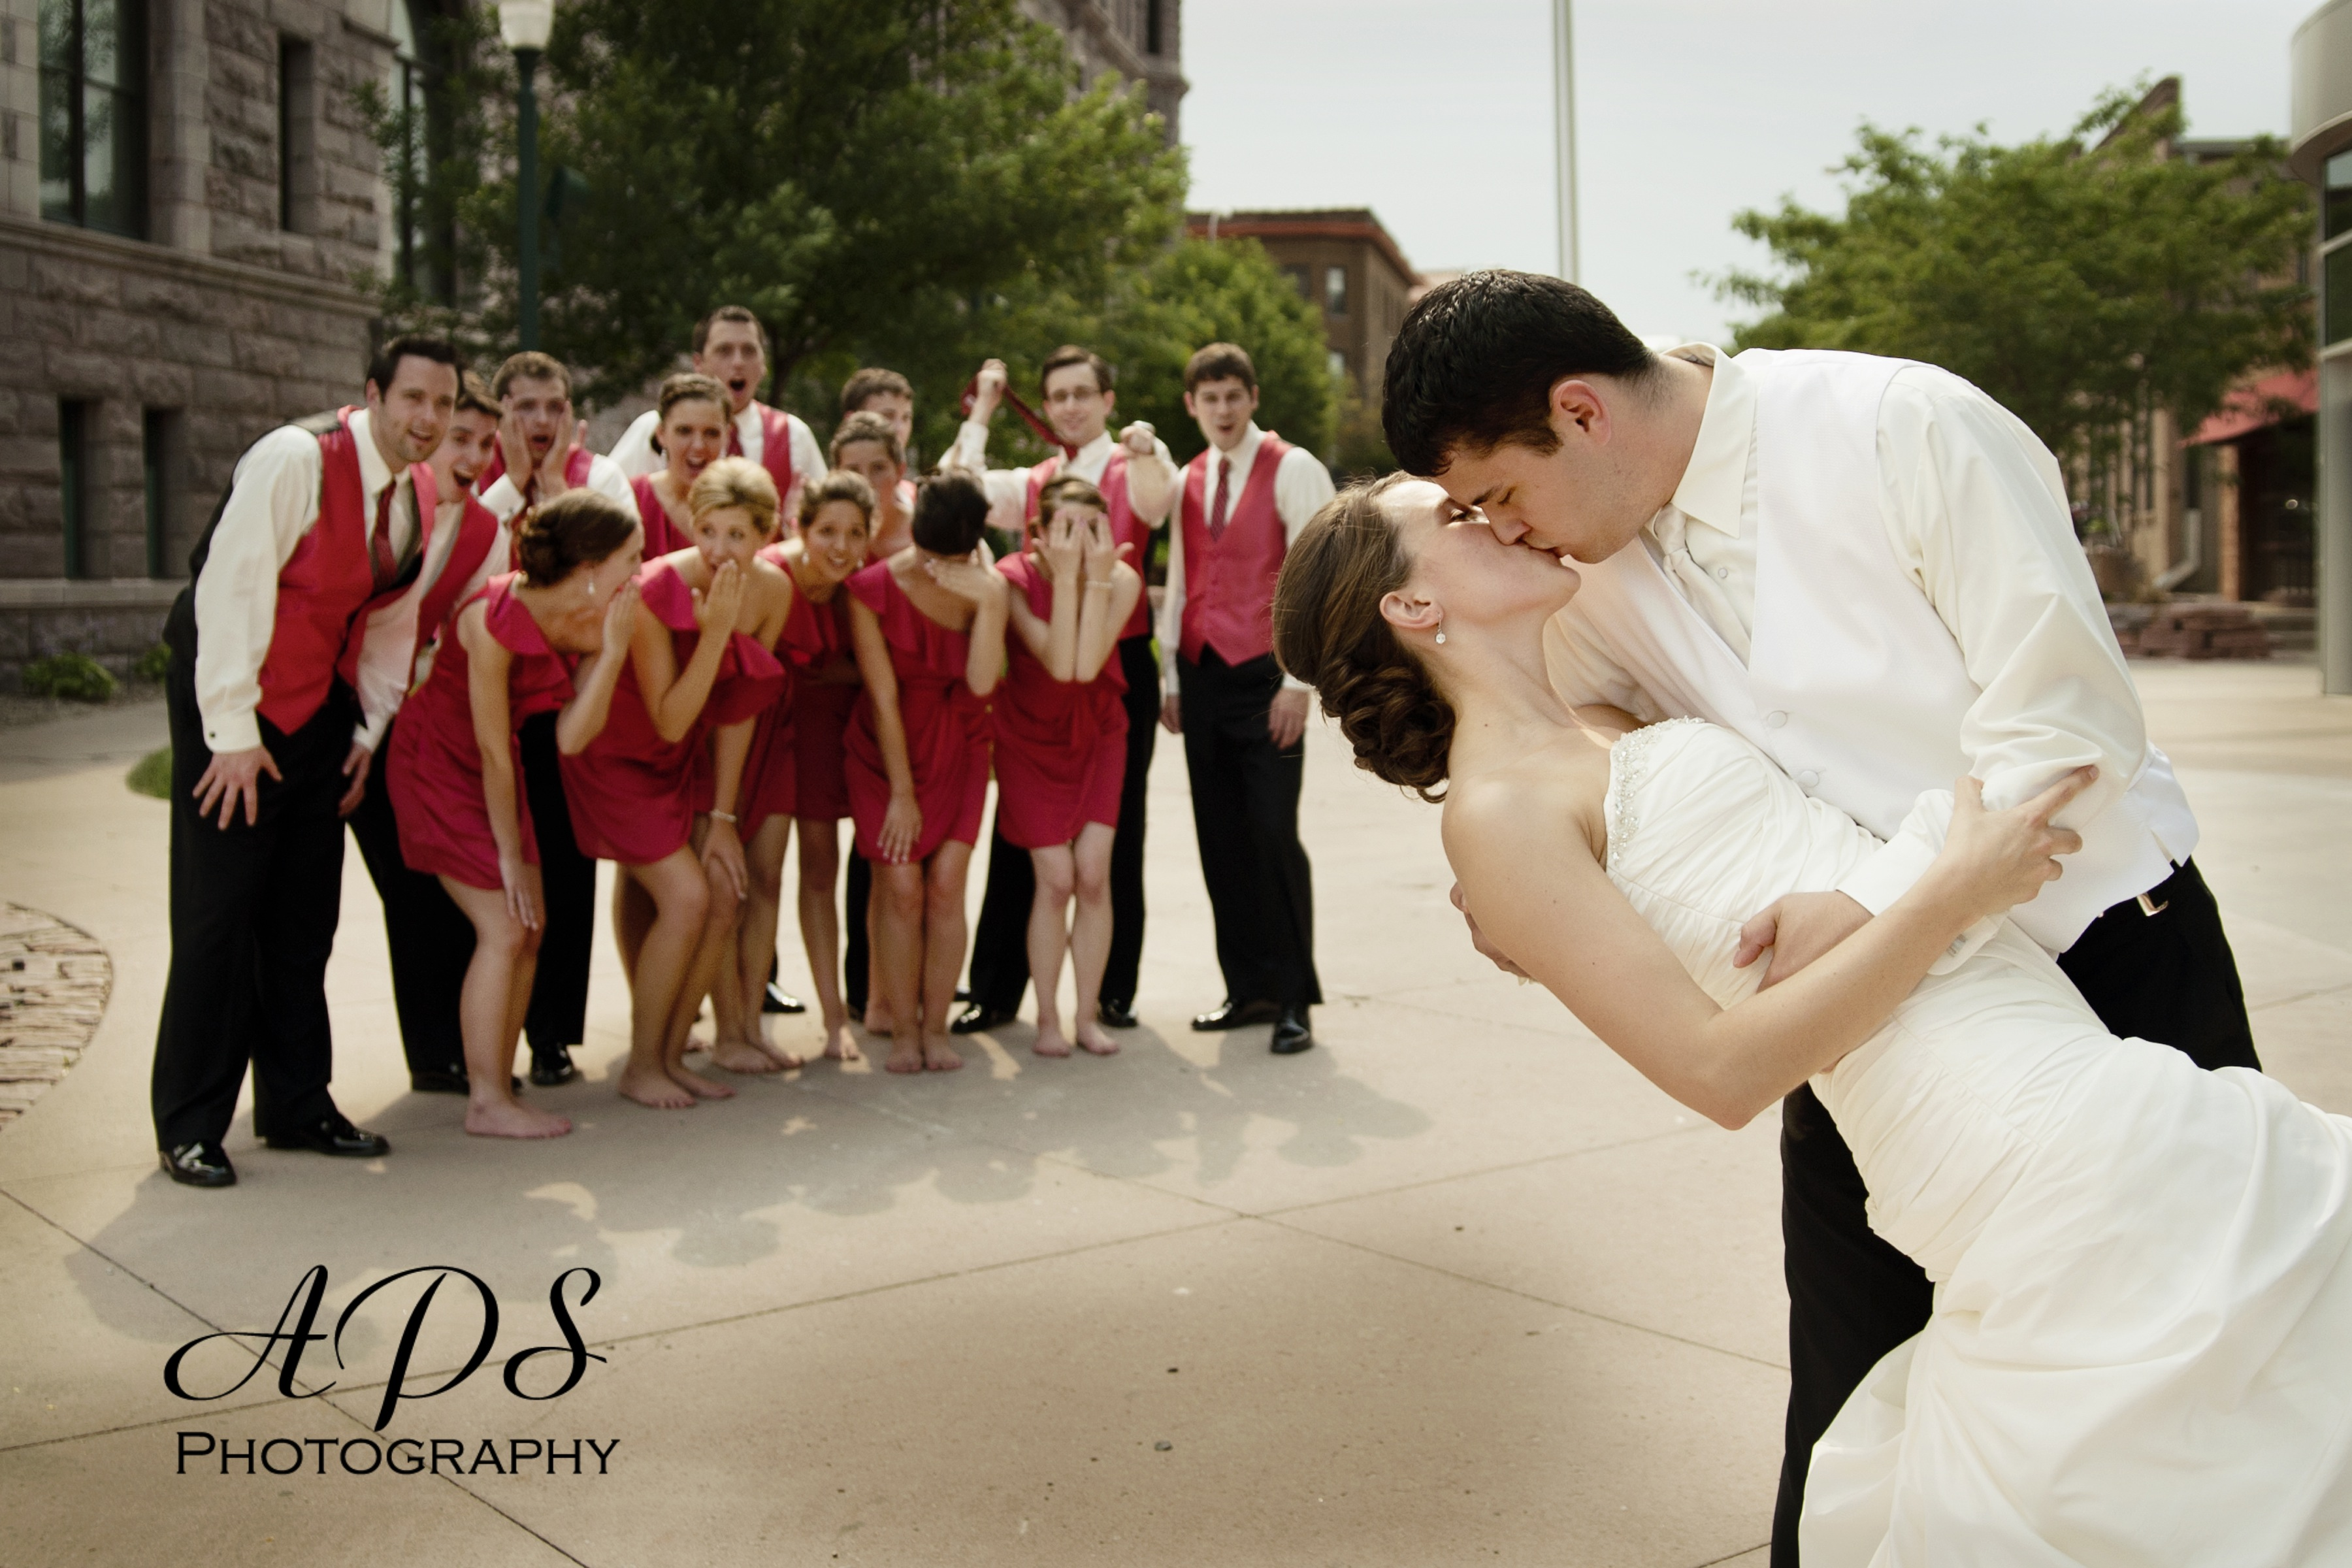 Feeling Silly: Fun Wedding Photo Ideas - My Hotel Wedding